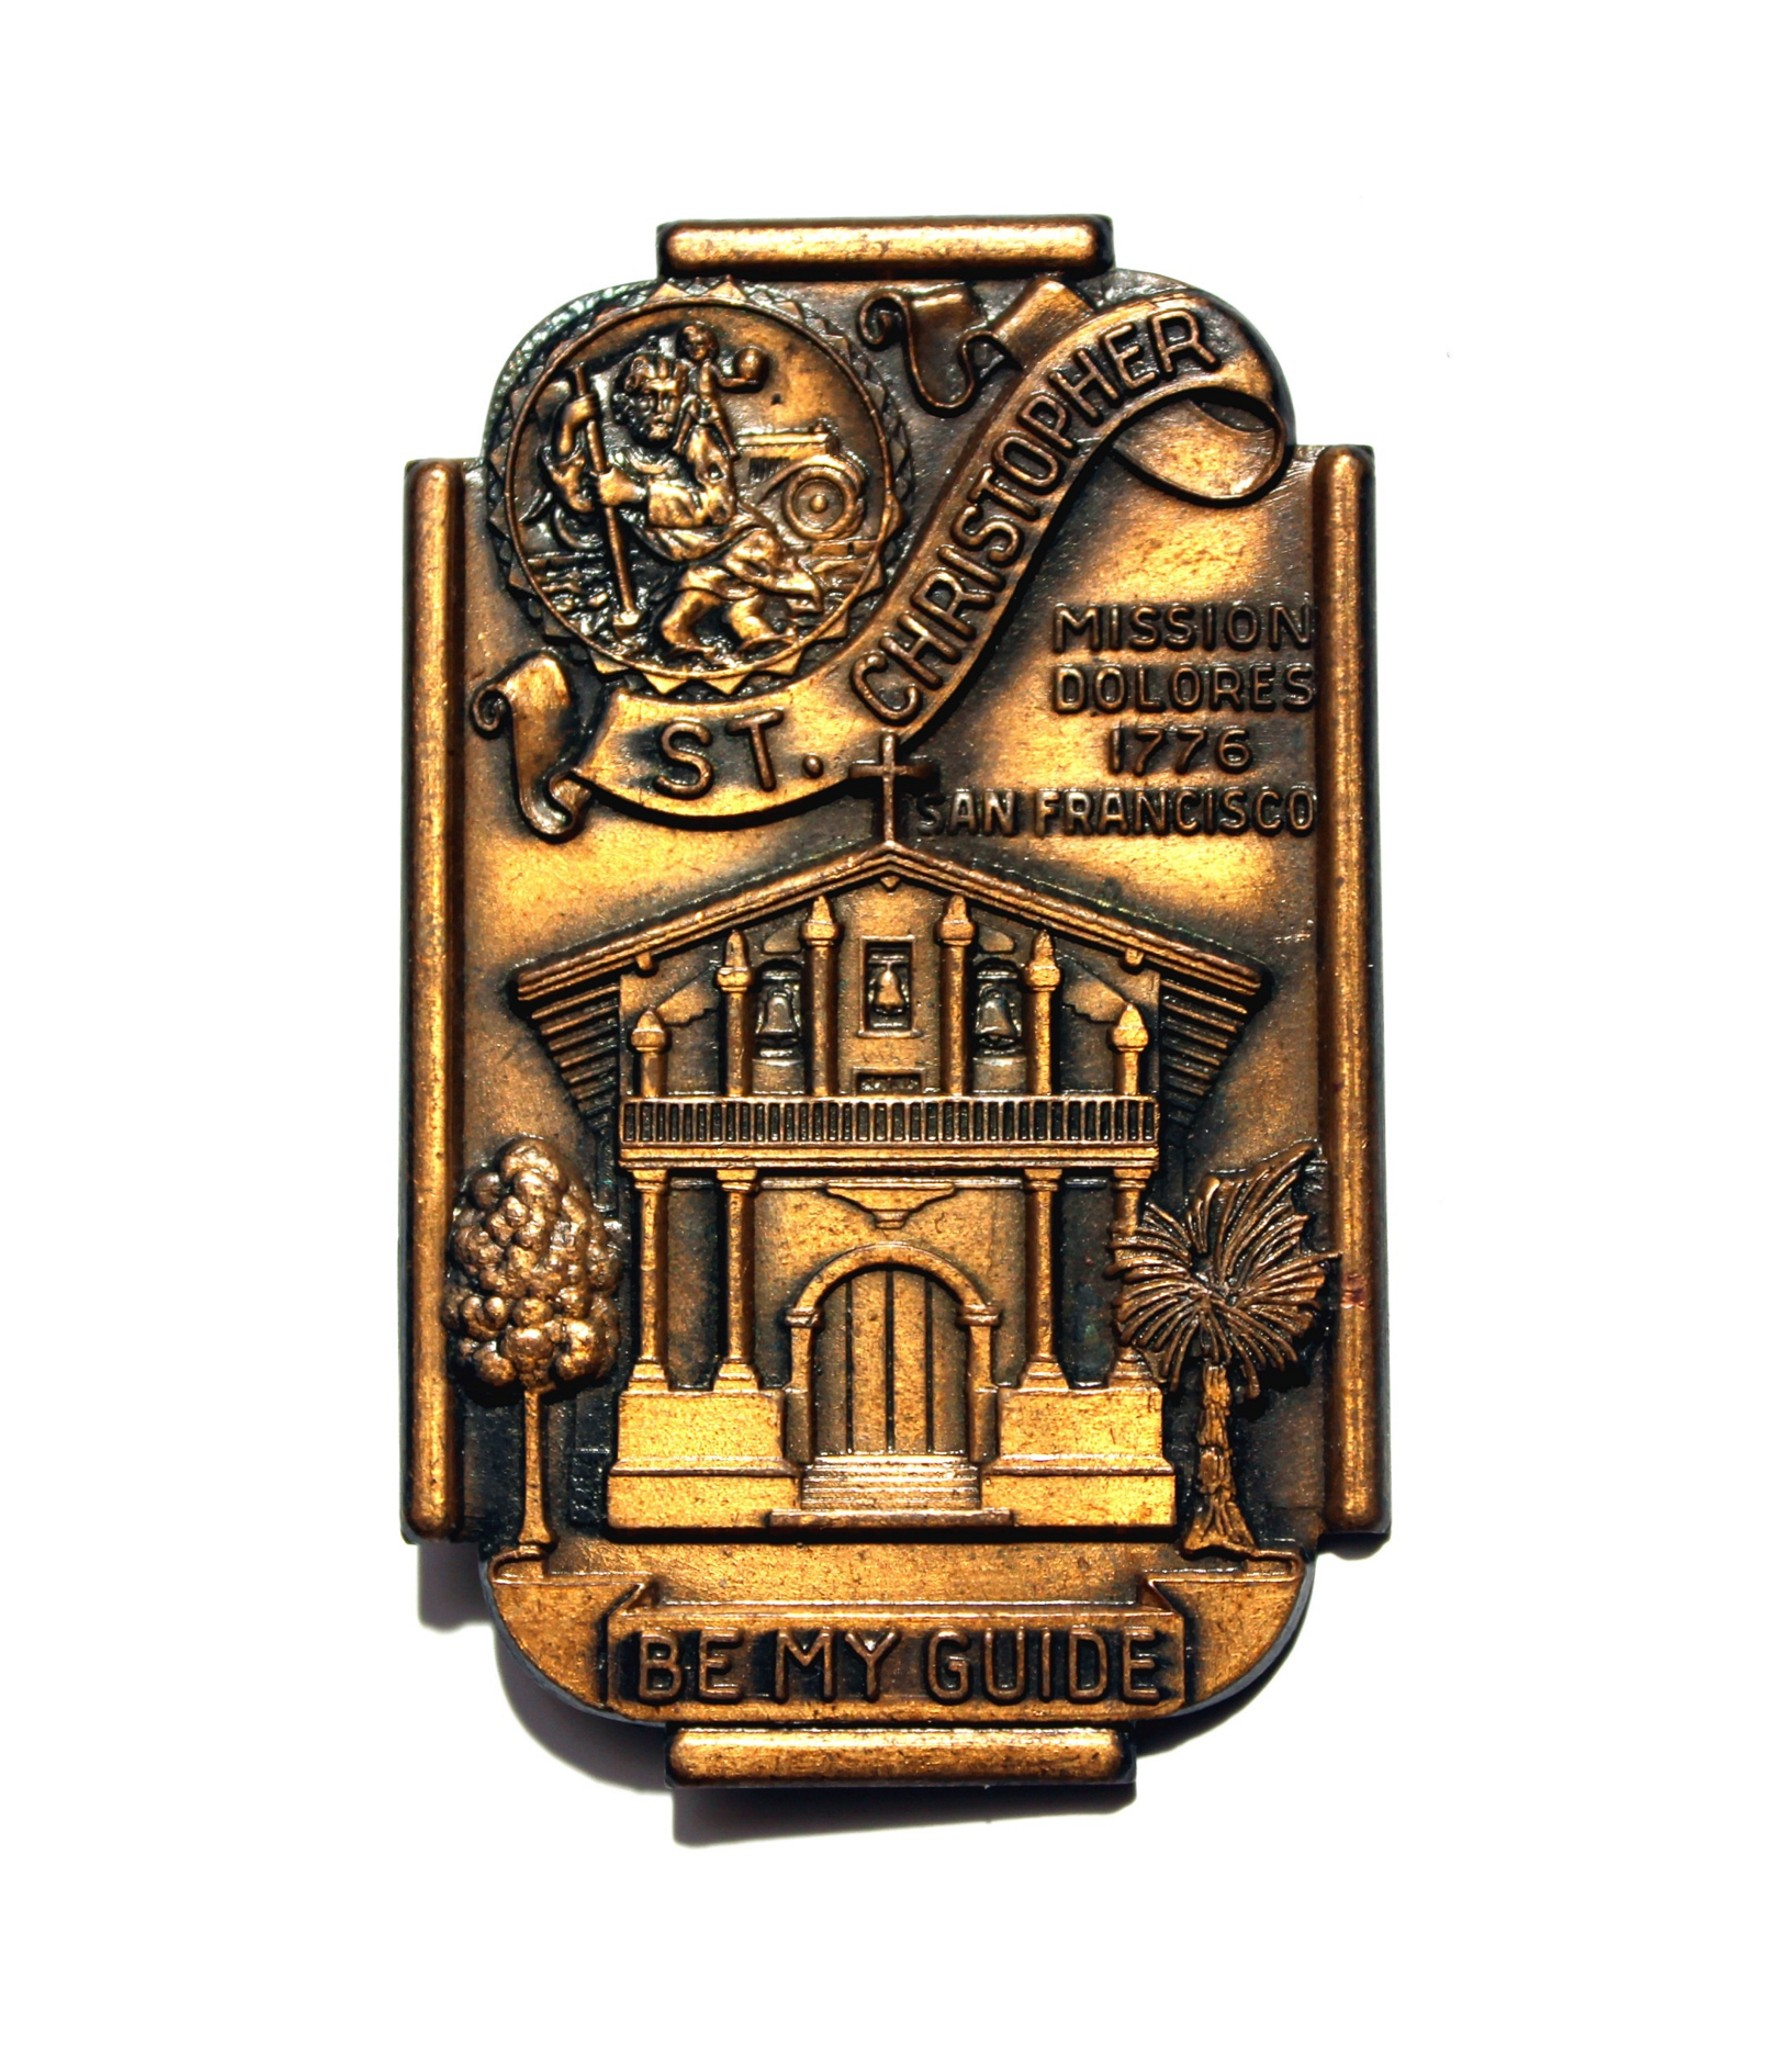 Mission Dolores San Francisco St. Christopher Visor Clip